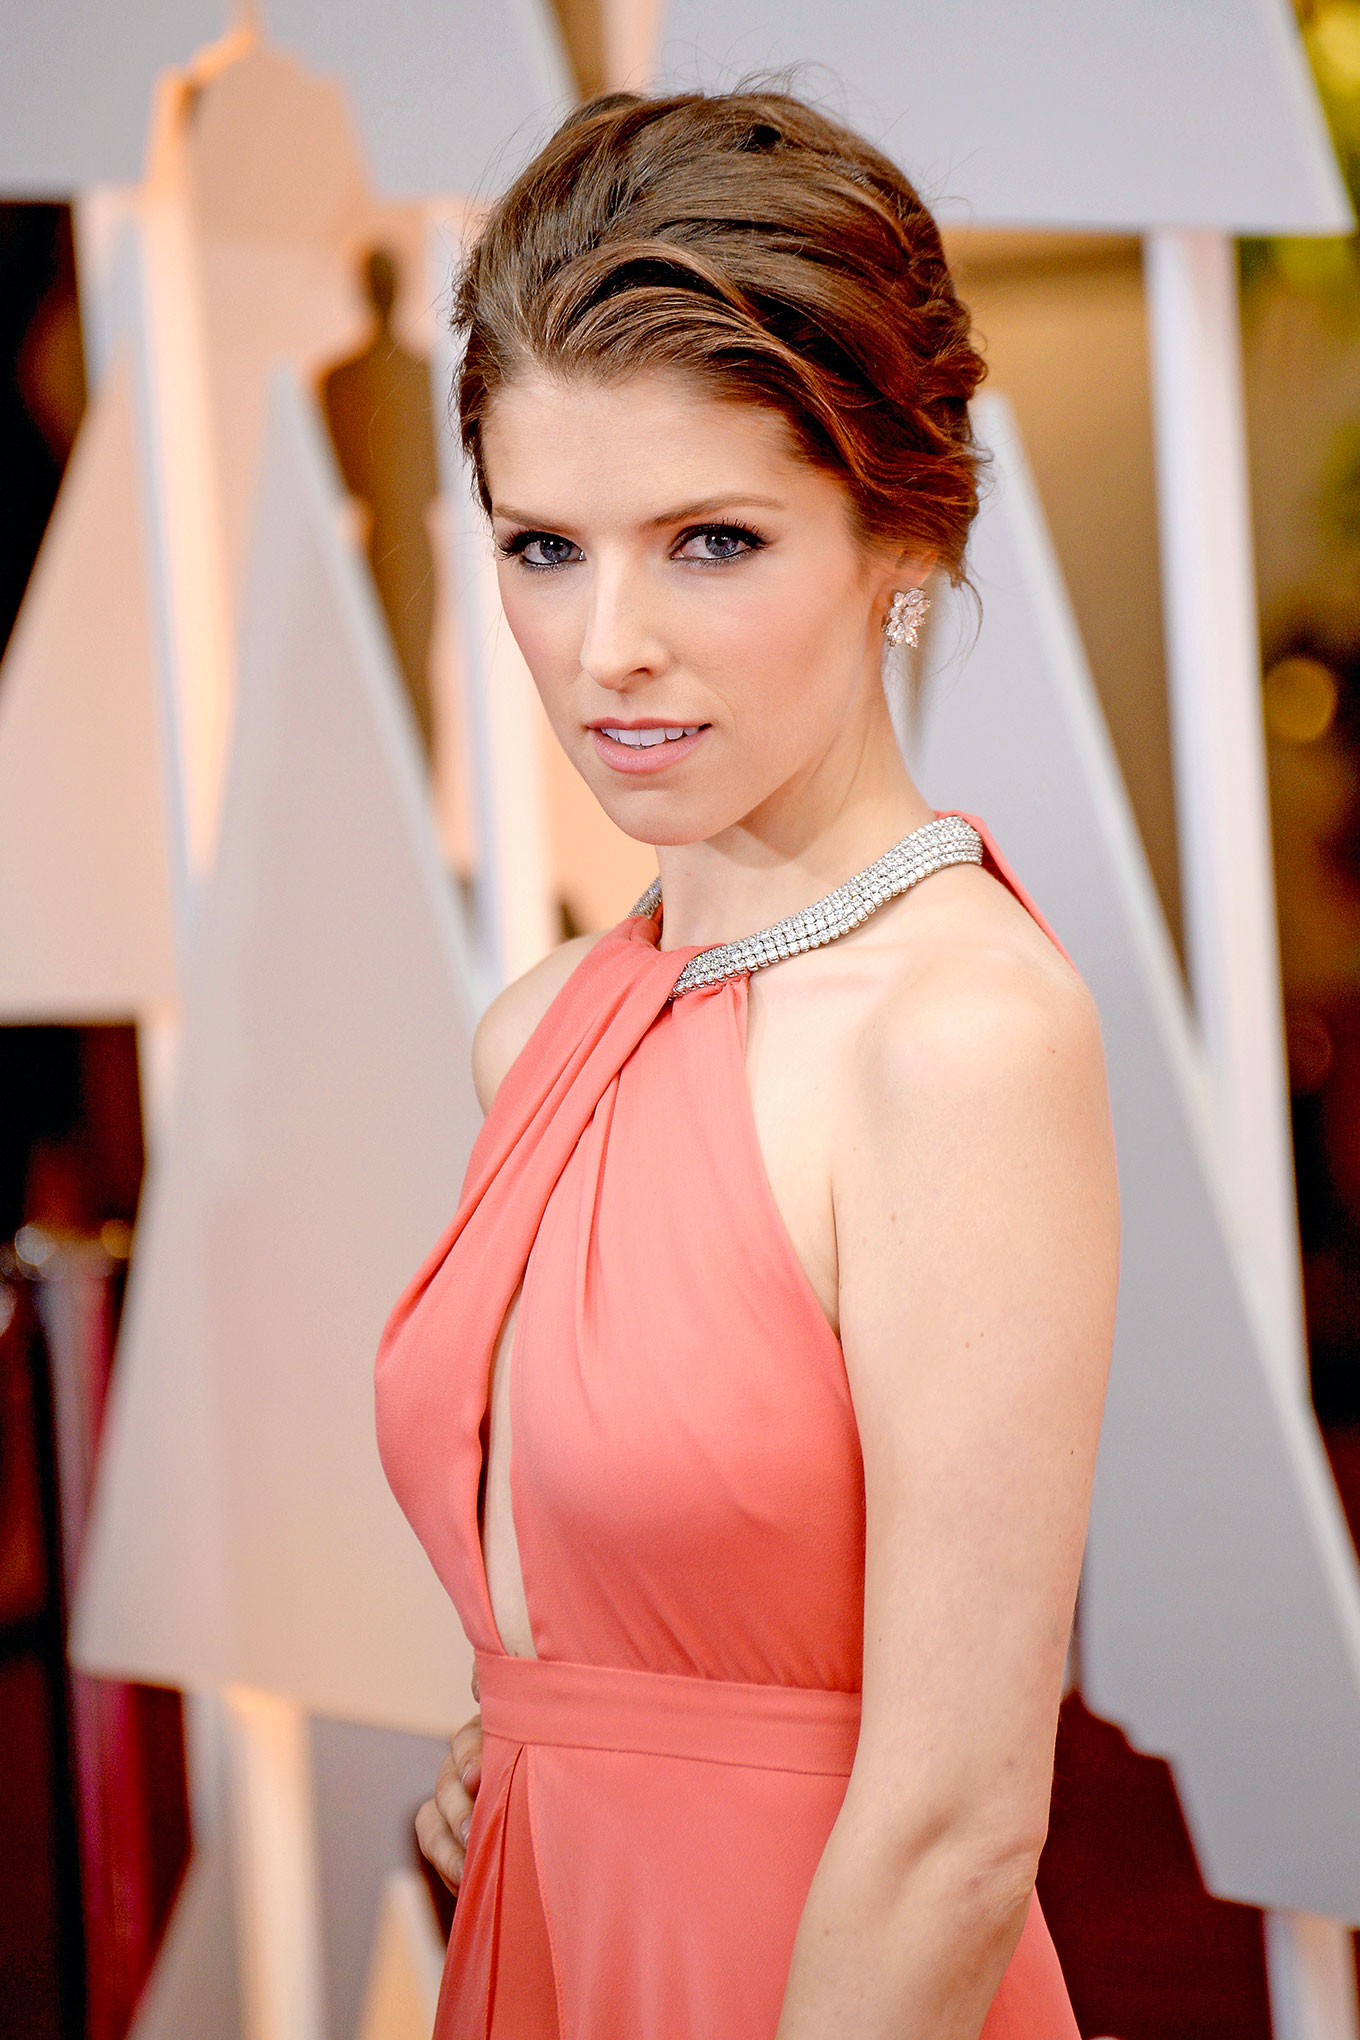 Anna Kendrick For mobile